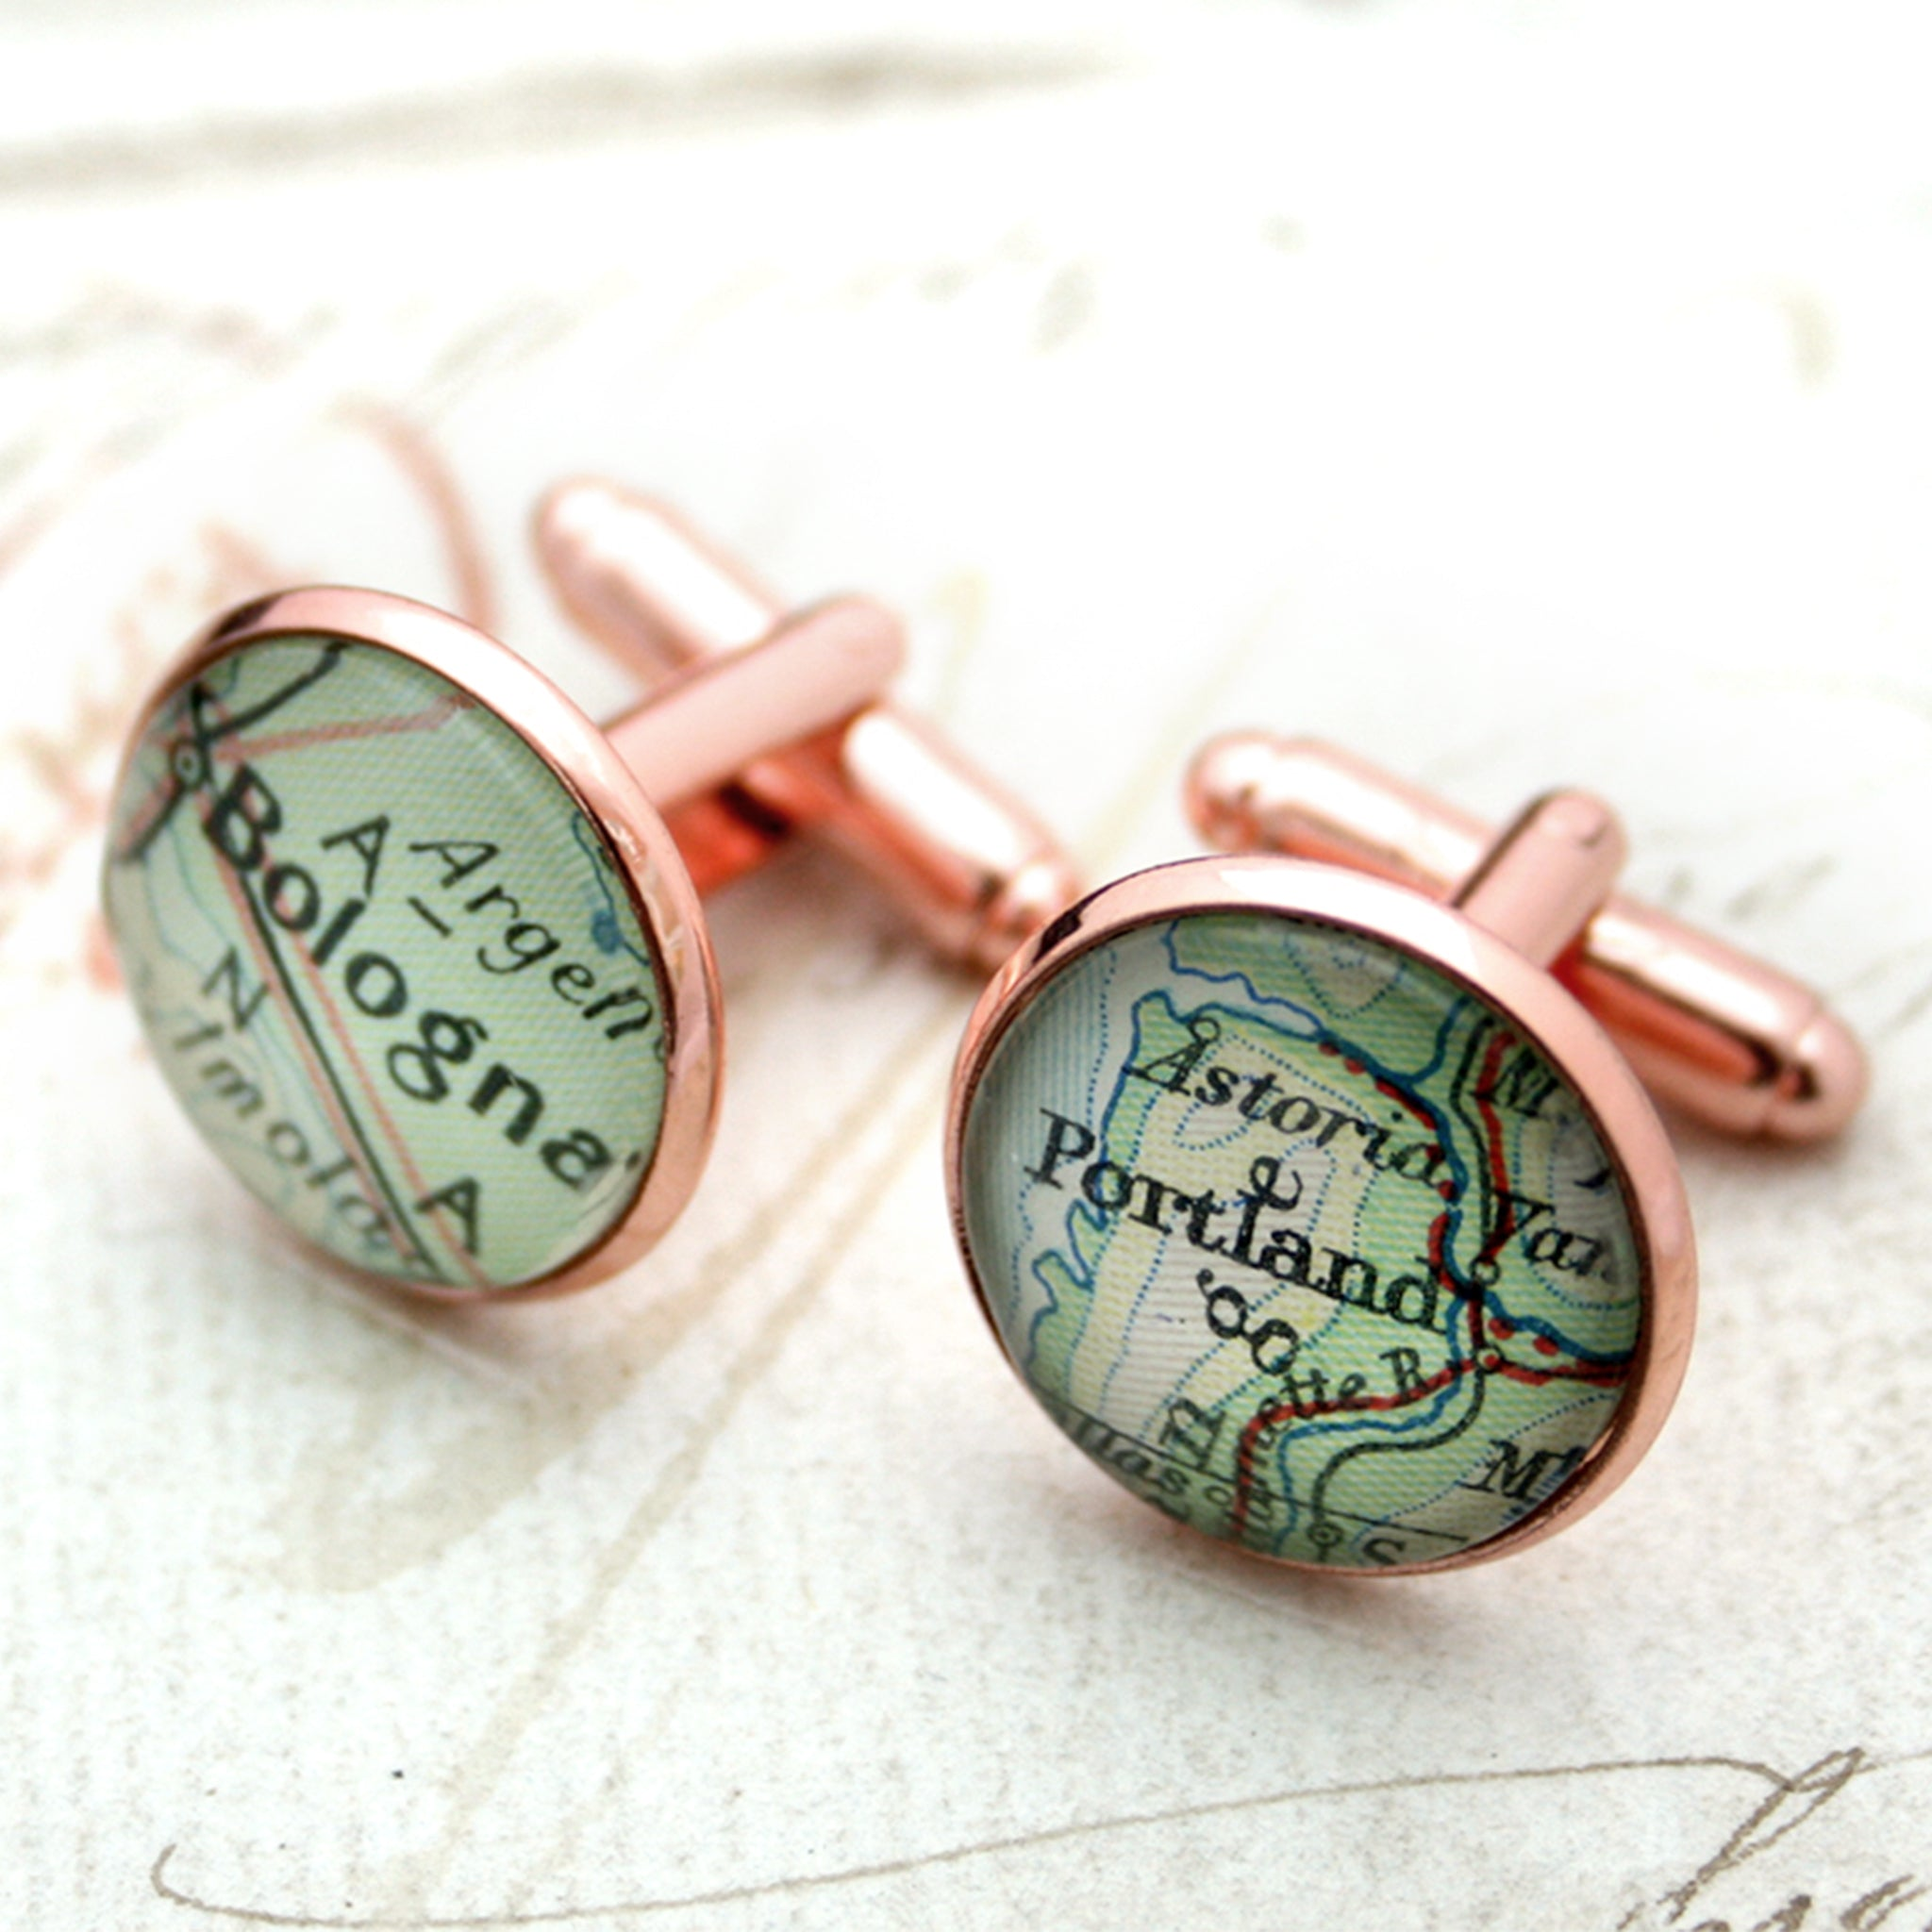 Personalised map cufflinks in rose gold color featuring Bologna and Portland